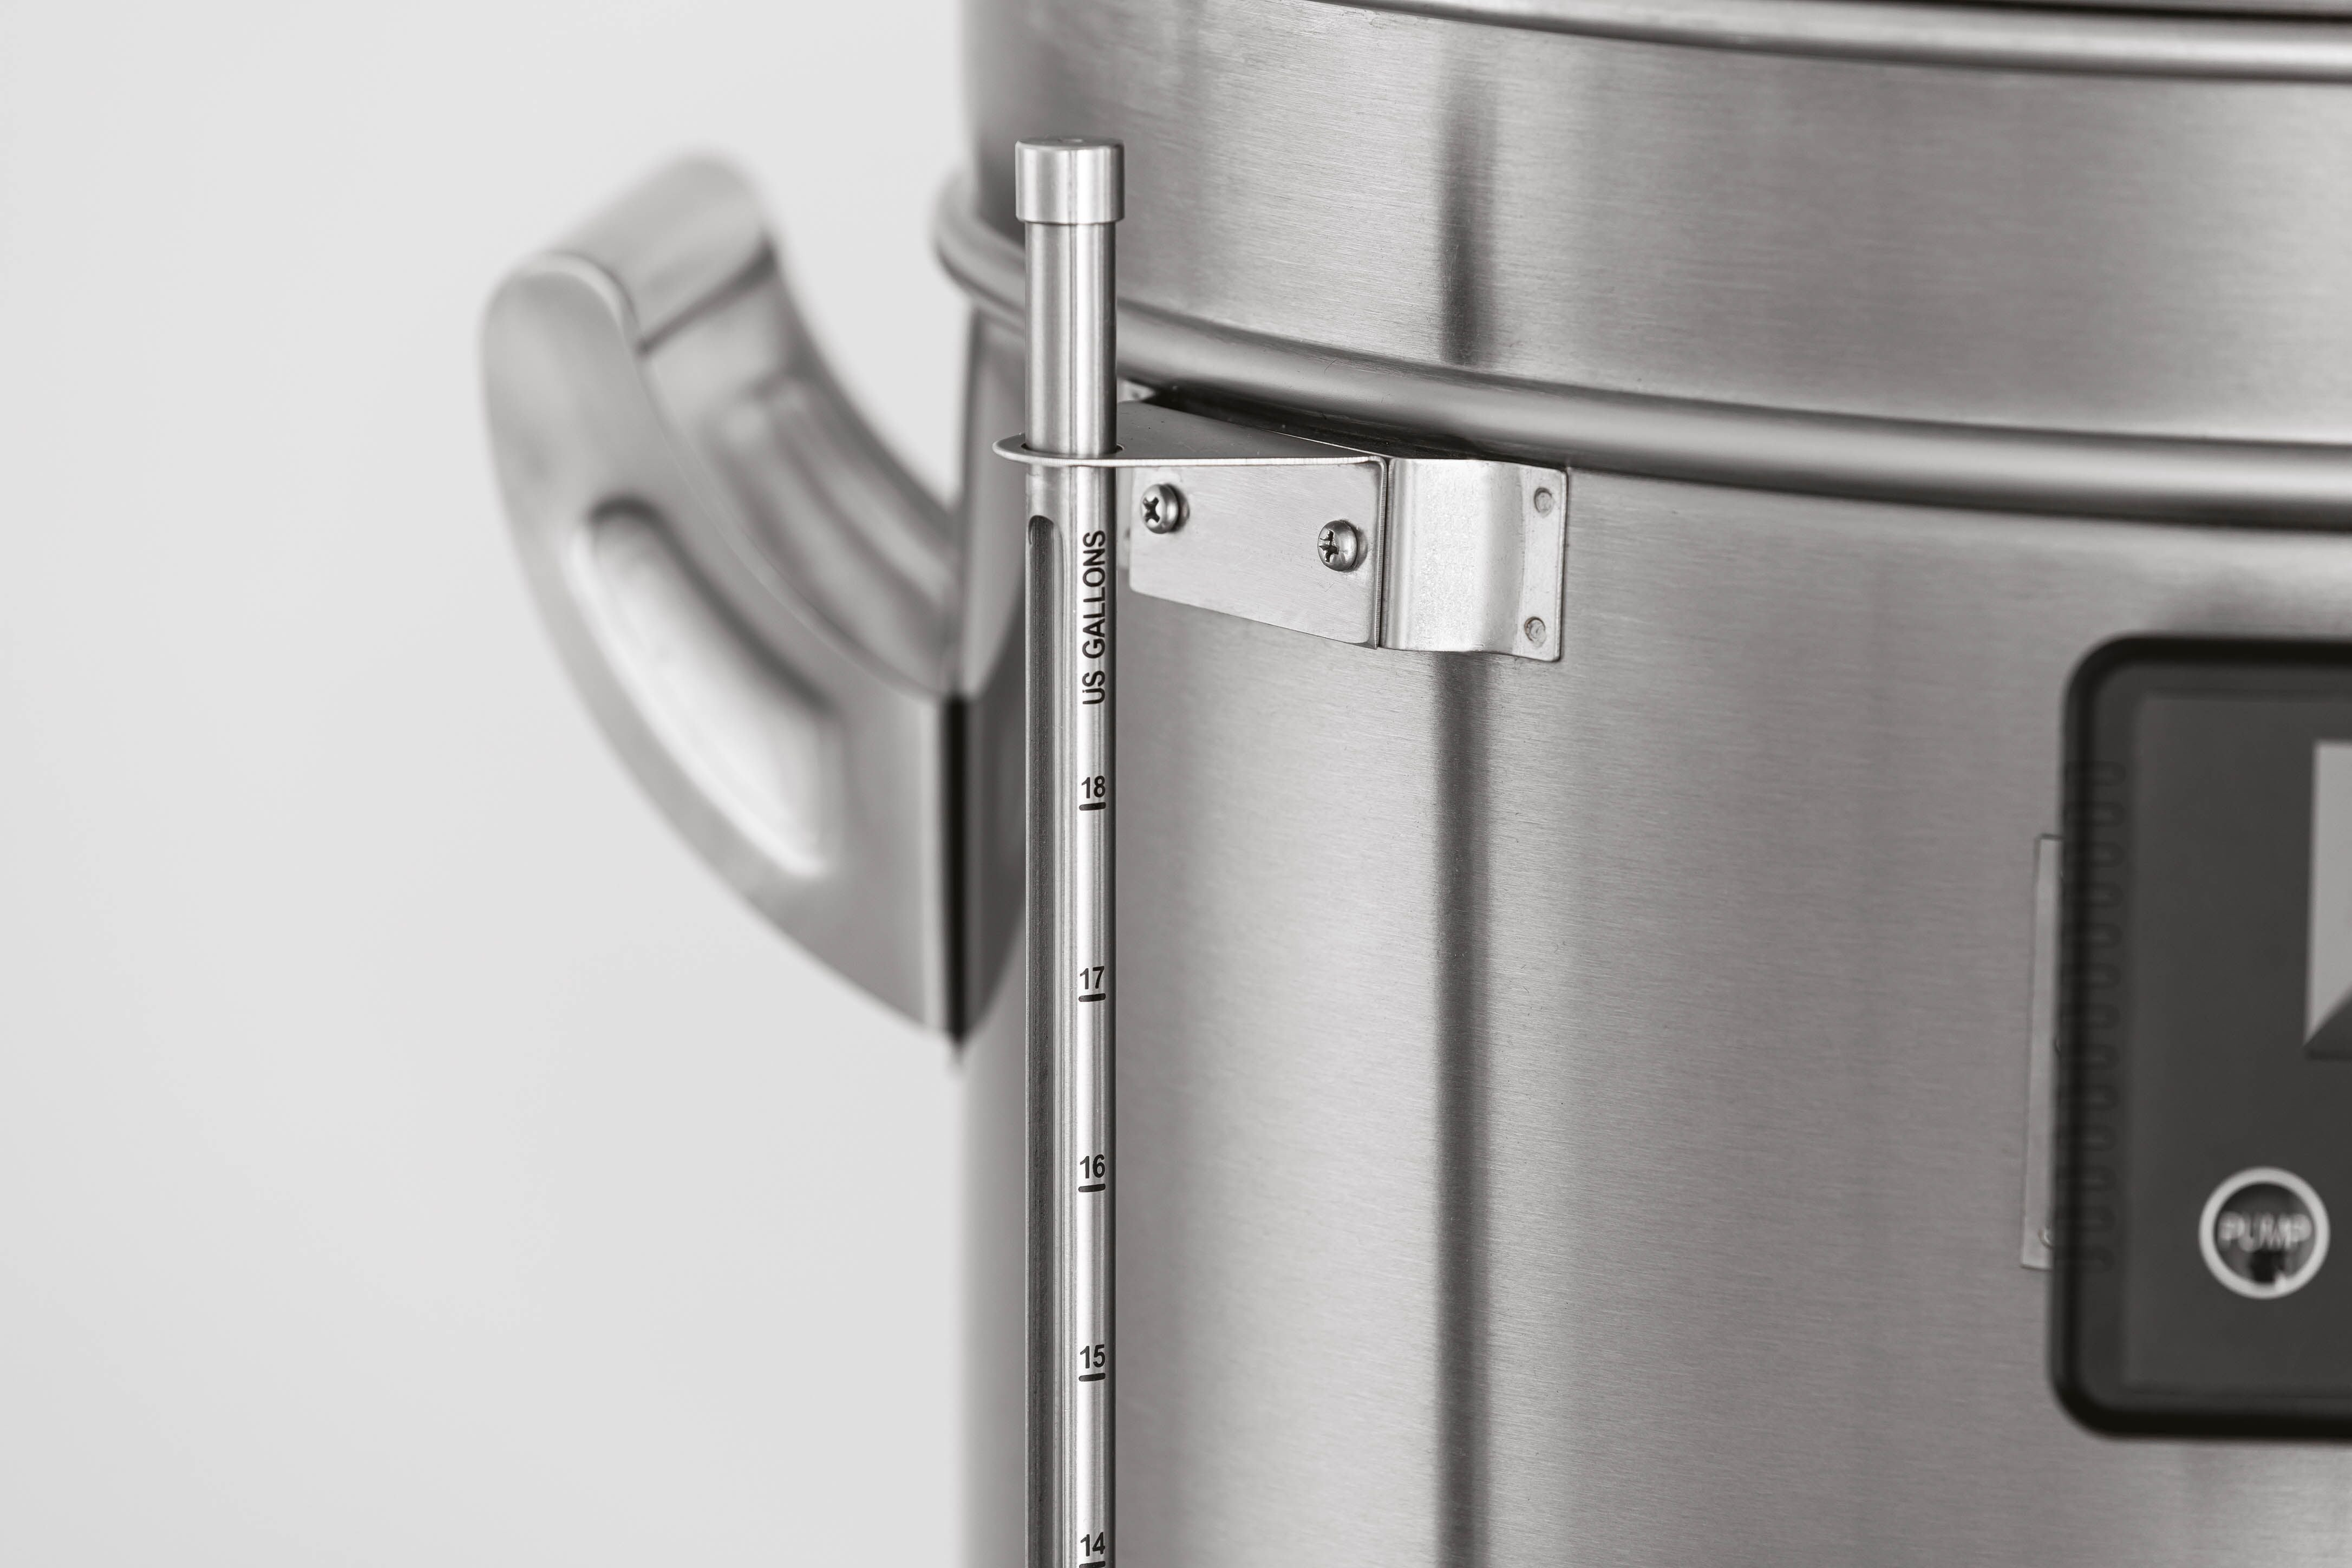 Grainfather G70